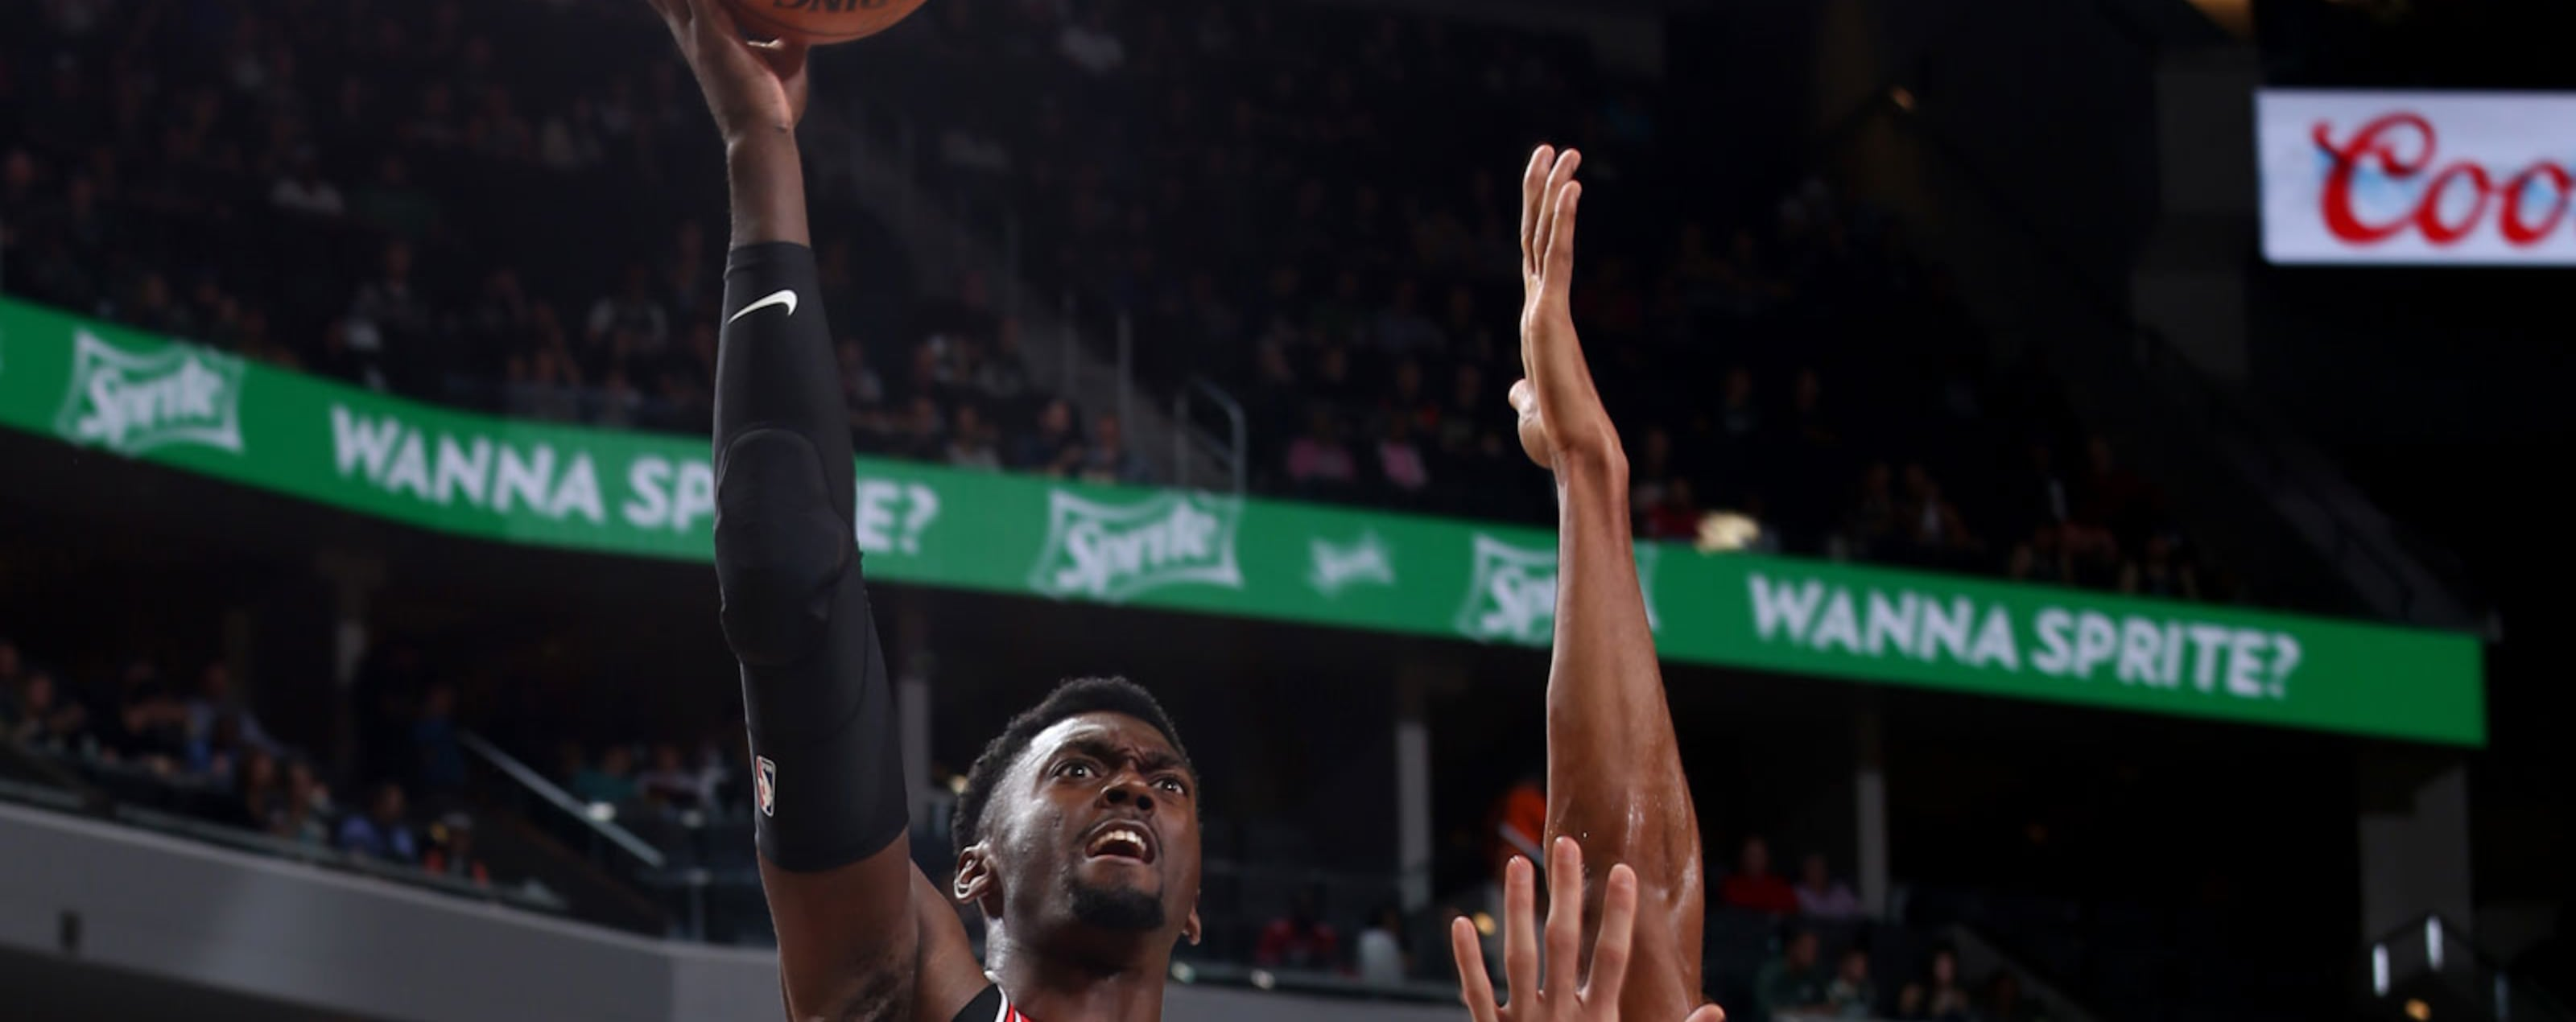 Bobby Portis #5 of the Chicago Bulls drives to the basket against the Milwaukee Bucks during a pre-season game on October 3, 2018 at Fiserv Forum, in Milwaukee, Wisconsin.